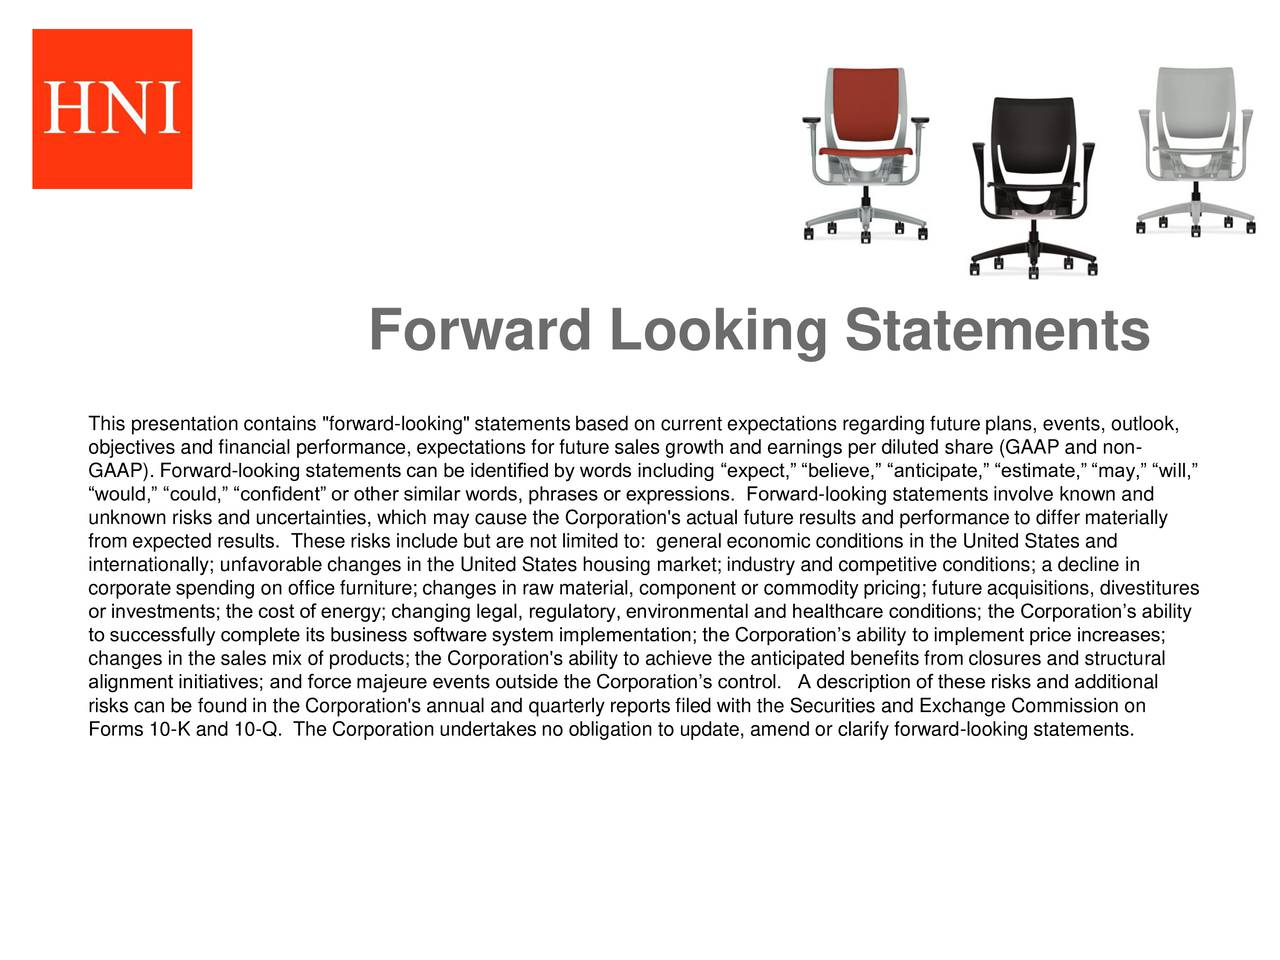 """This presentation contains """"forward-looking"""" statements based on current expectations regarding future plans, events, outlook, objectives and financial performance, expectations for future sales growth and earnings per diluted share (GAAP and non- GAAP). Forward-looking statements can be identified by words including expect, believe, anticipate, estimate, may, will, would, could, confident or other similar words, phrases or expressions. Forward-looking statements involve known and unknown risks and uncertainties, which may cause the Corporation's actual future results and performance to differ materially from expected results. These risks include but are not limited to: general economic conditions in the United States and internationally; unfavorable changes in the United States housing market; industry and competitive conditions; a decline in corporate spending on office furniture; changes in raw material, component or commodity pricing; future acquisitions, divestitures or investments; the cost of energy; changing legal, regulatory, environmental and healthcare conditions; the Corporations ability to successfully complete its business software system implementation; the Corporations ability to implement price increases; changes in the sales mix of products; the Corporation's ability to achieve the anticipated benefits from closures and structural alignment initiatives; and force majeure events outside the Corporations control. A description of these risks and additional risks can be found in the Corporation's annual and quarterly reports filed with the Securities and Exchange Commission on Forms 10-K and 10-Q. The Corporation undertakes no obligation to update, amend or clarify forward-looking statements."""